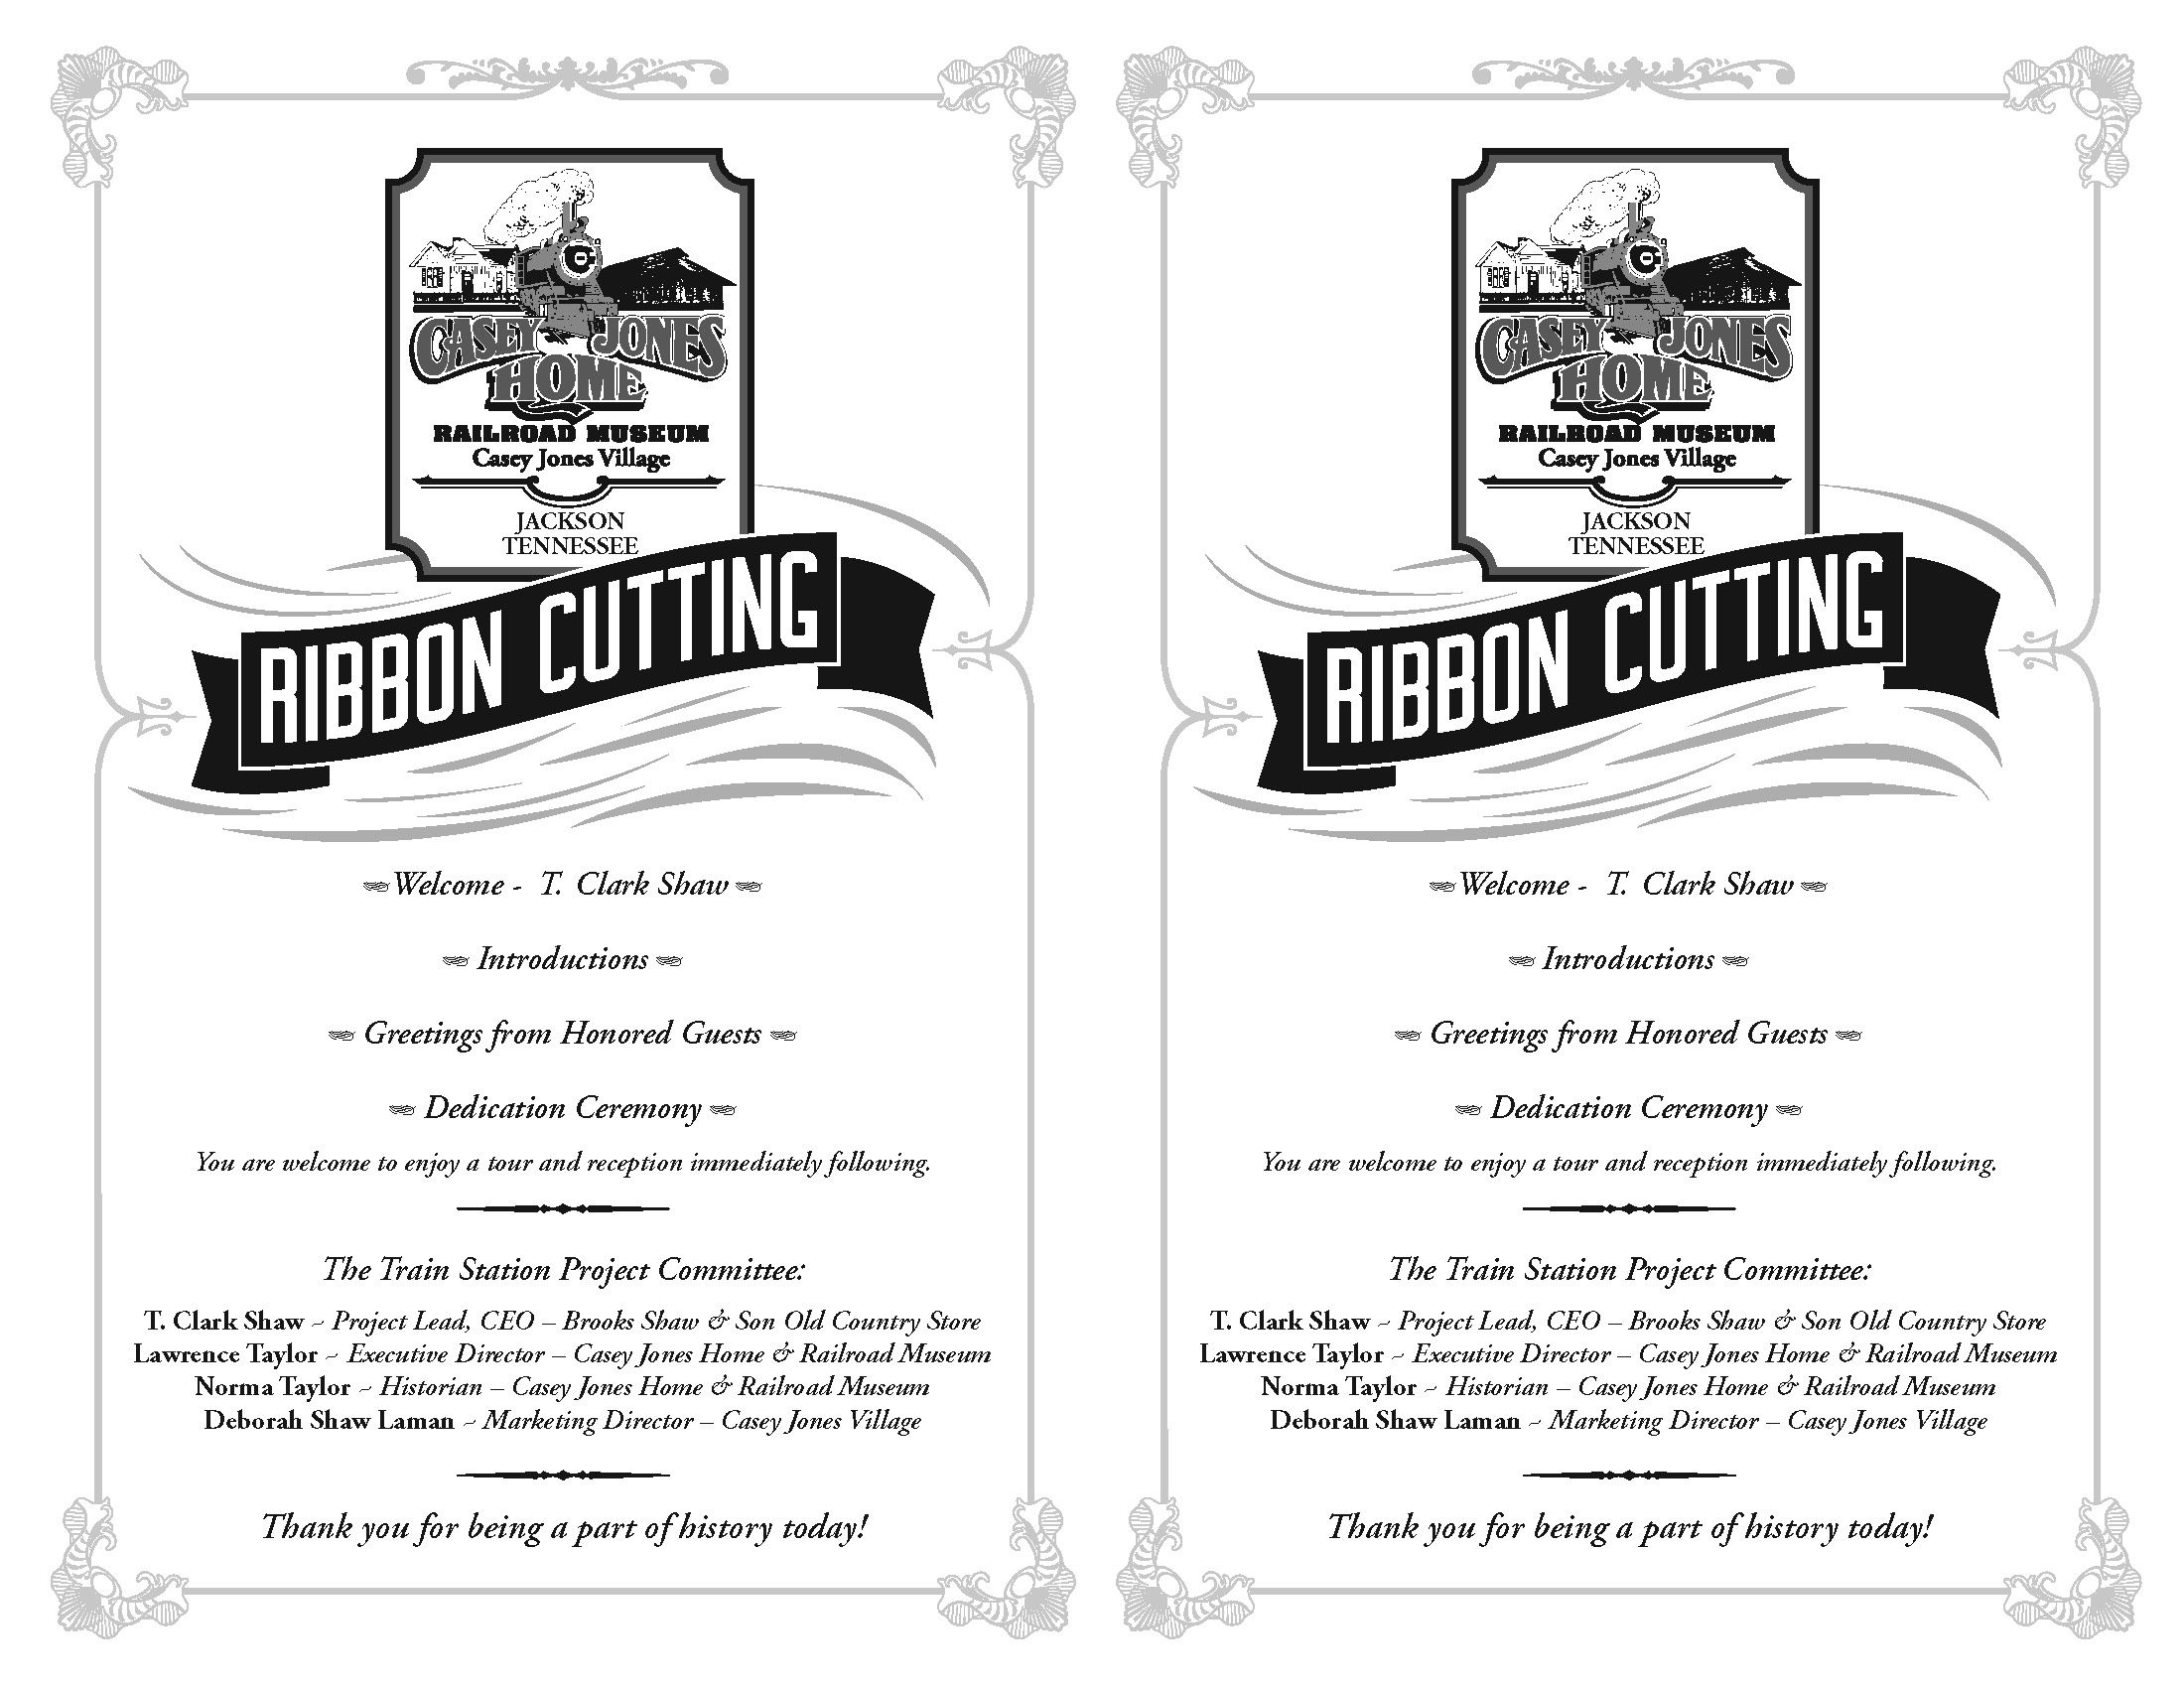 ribbon cutting ceremony program template program for the. Black Bedroom Furniture Sets. Home Design Ideas